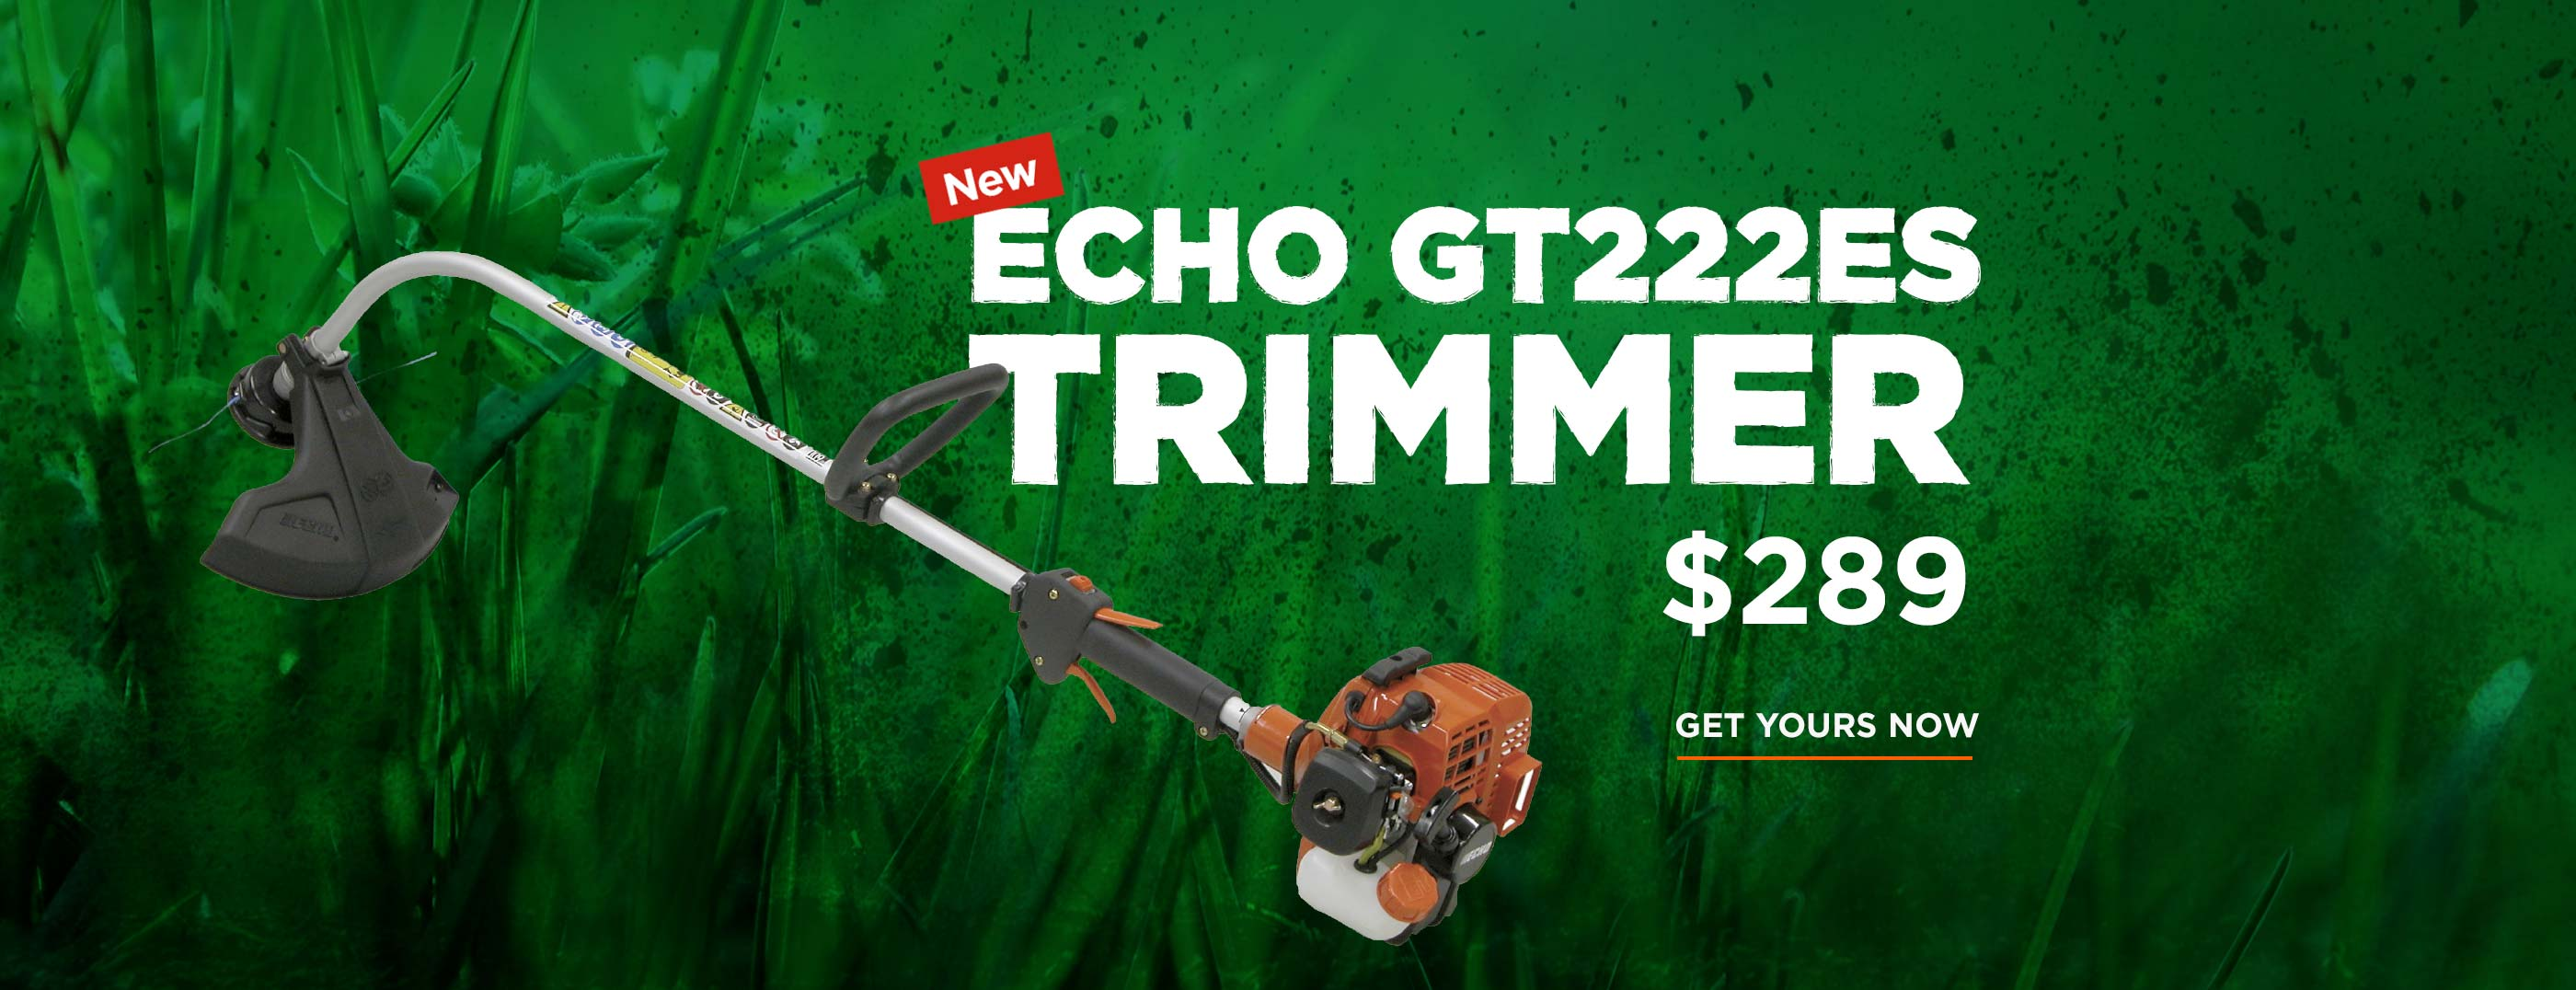 Echo GT222ES Trimmer on sale, only $289!